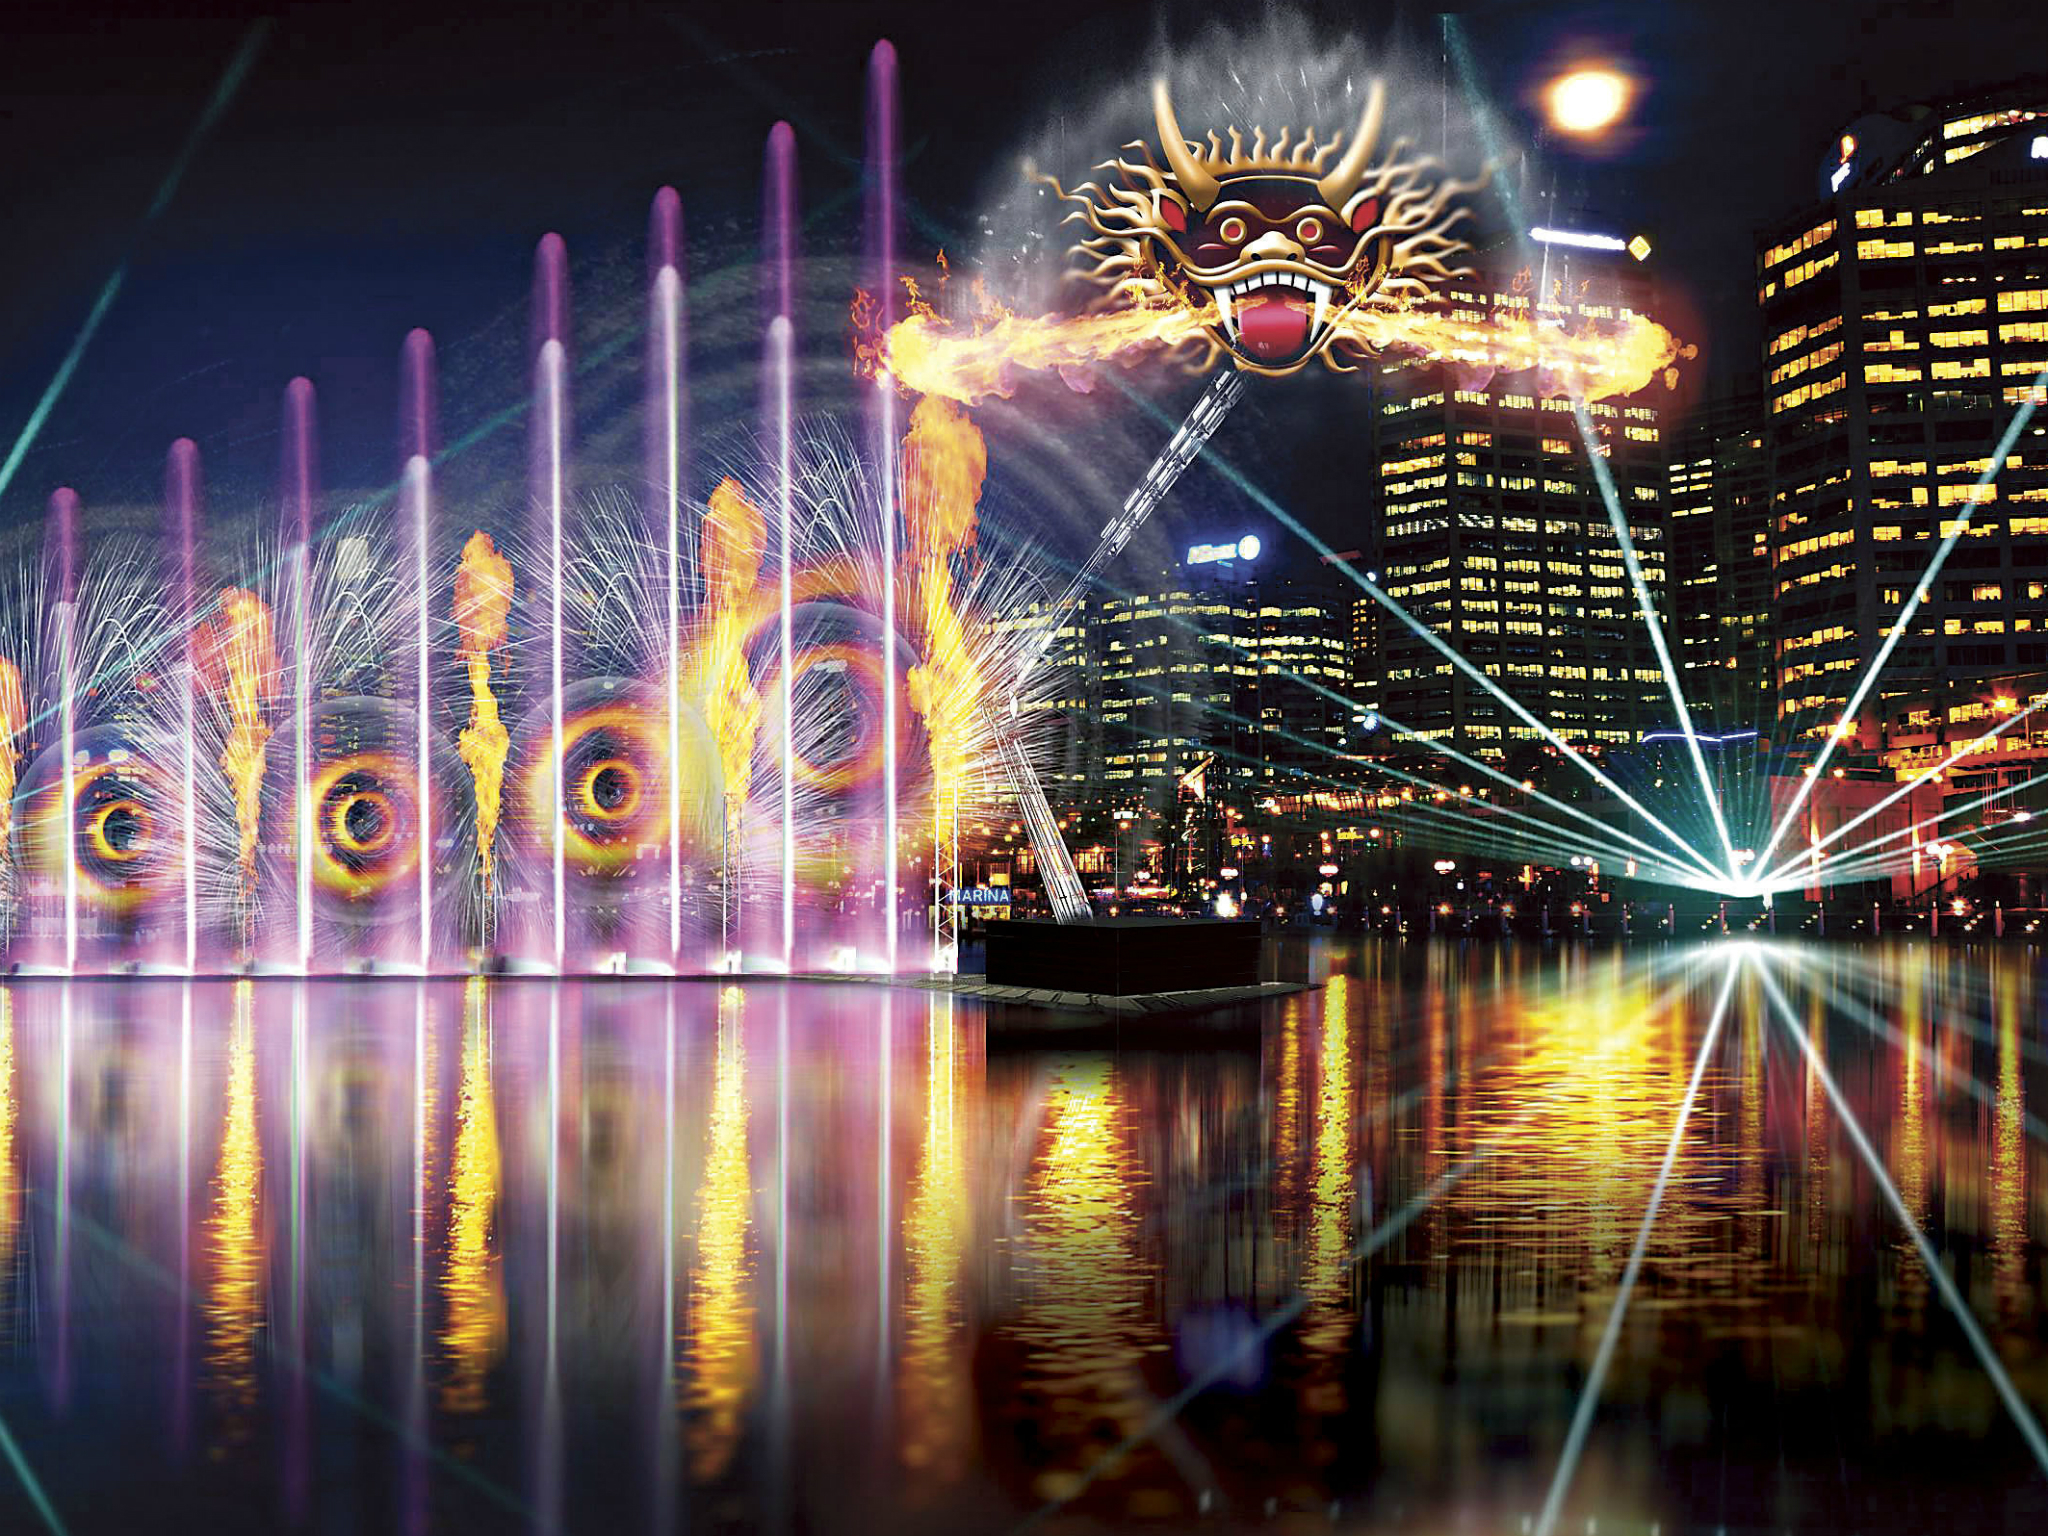 Artist impression of light water fountain in Darling Harbour